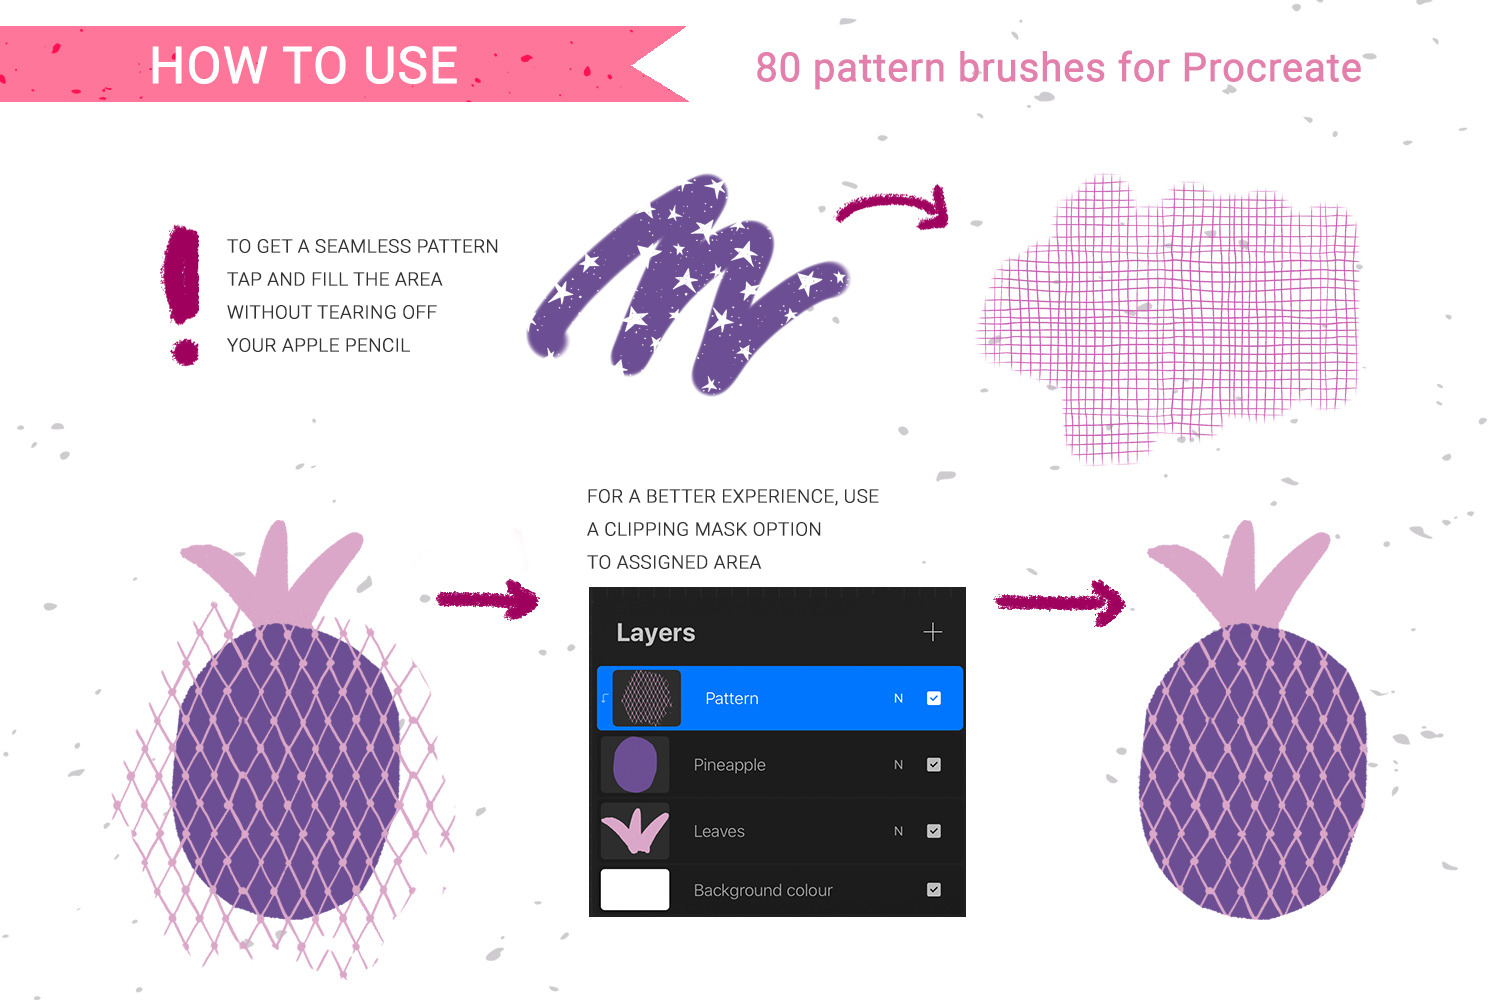 80 hand-drawn patterns for Procreate